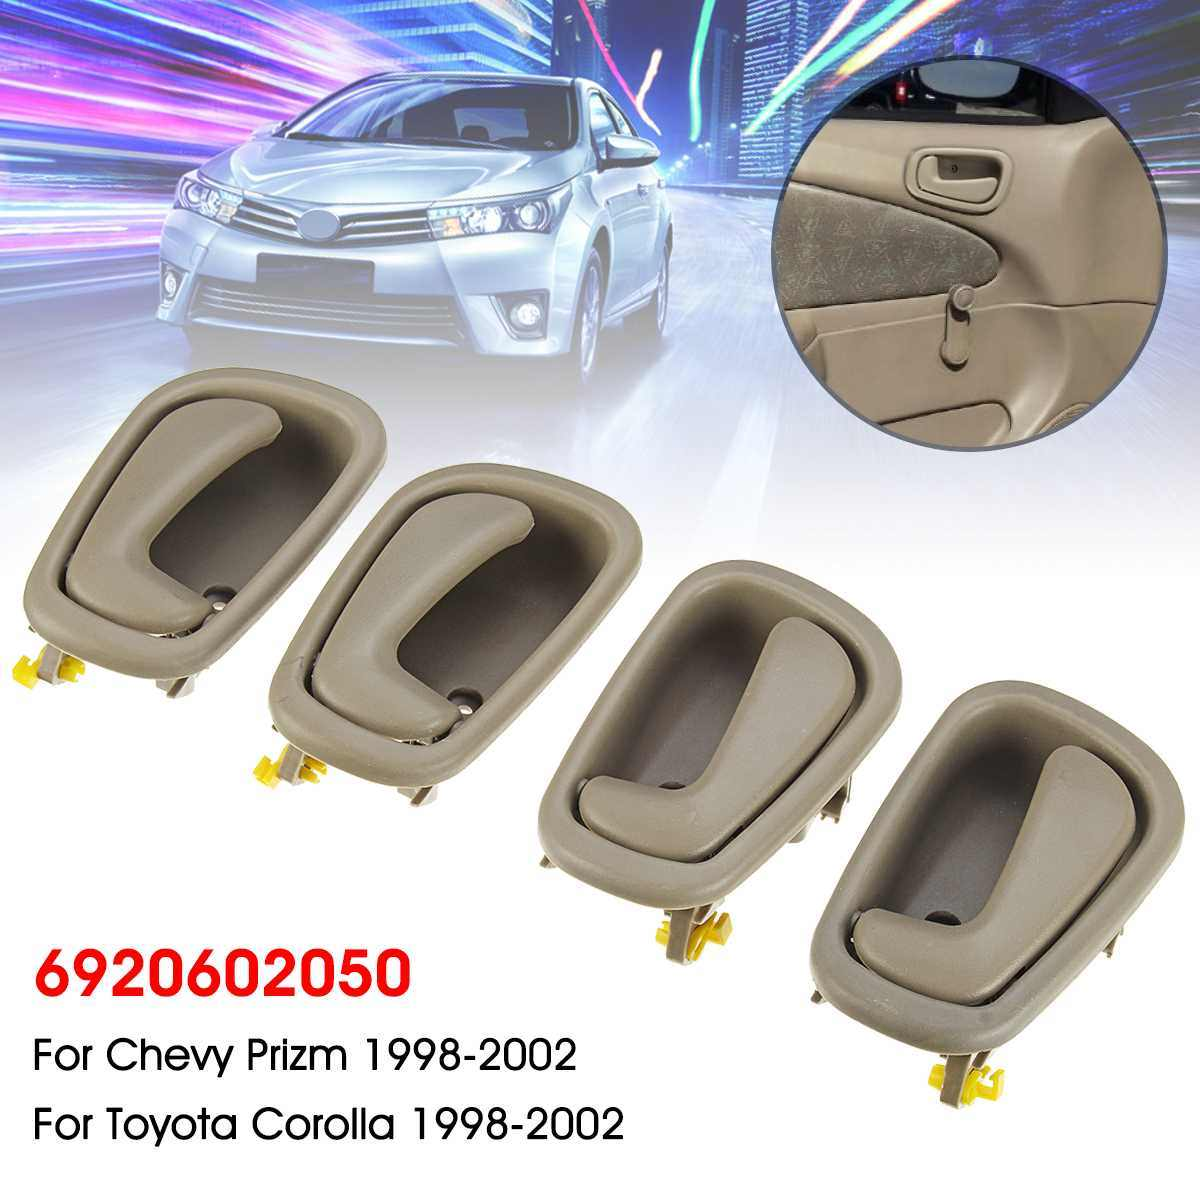 4pcs interior door handle for toyota corolla geo prizm 1998 1999 2000 2001 2002 6920602050 beige interior door handles aliexpress aliexpress